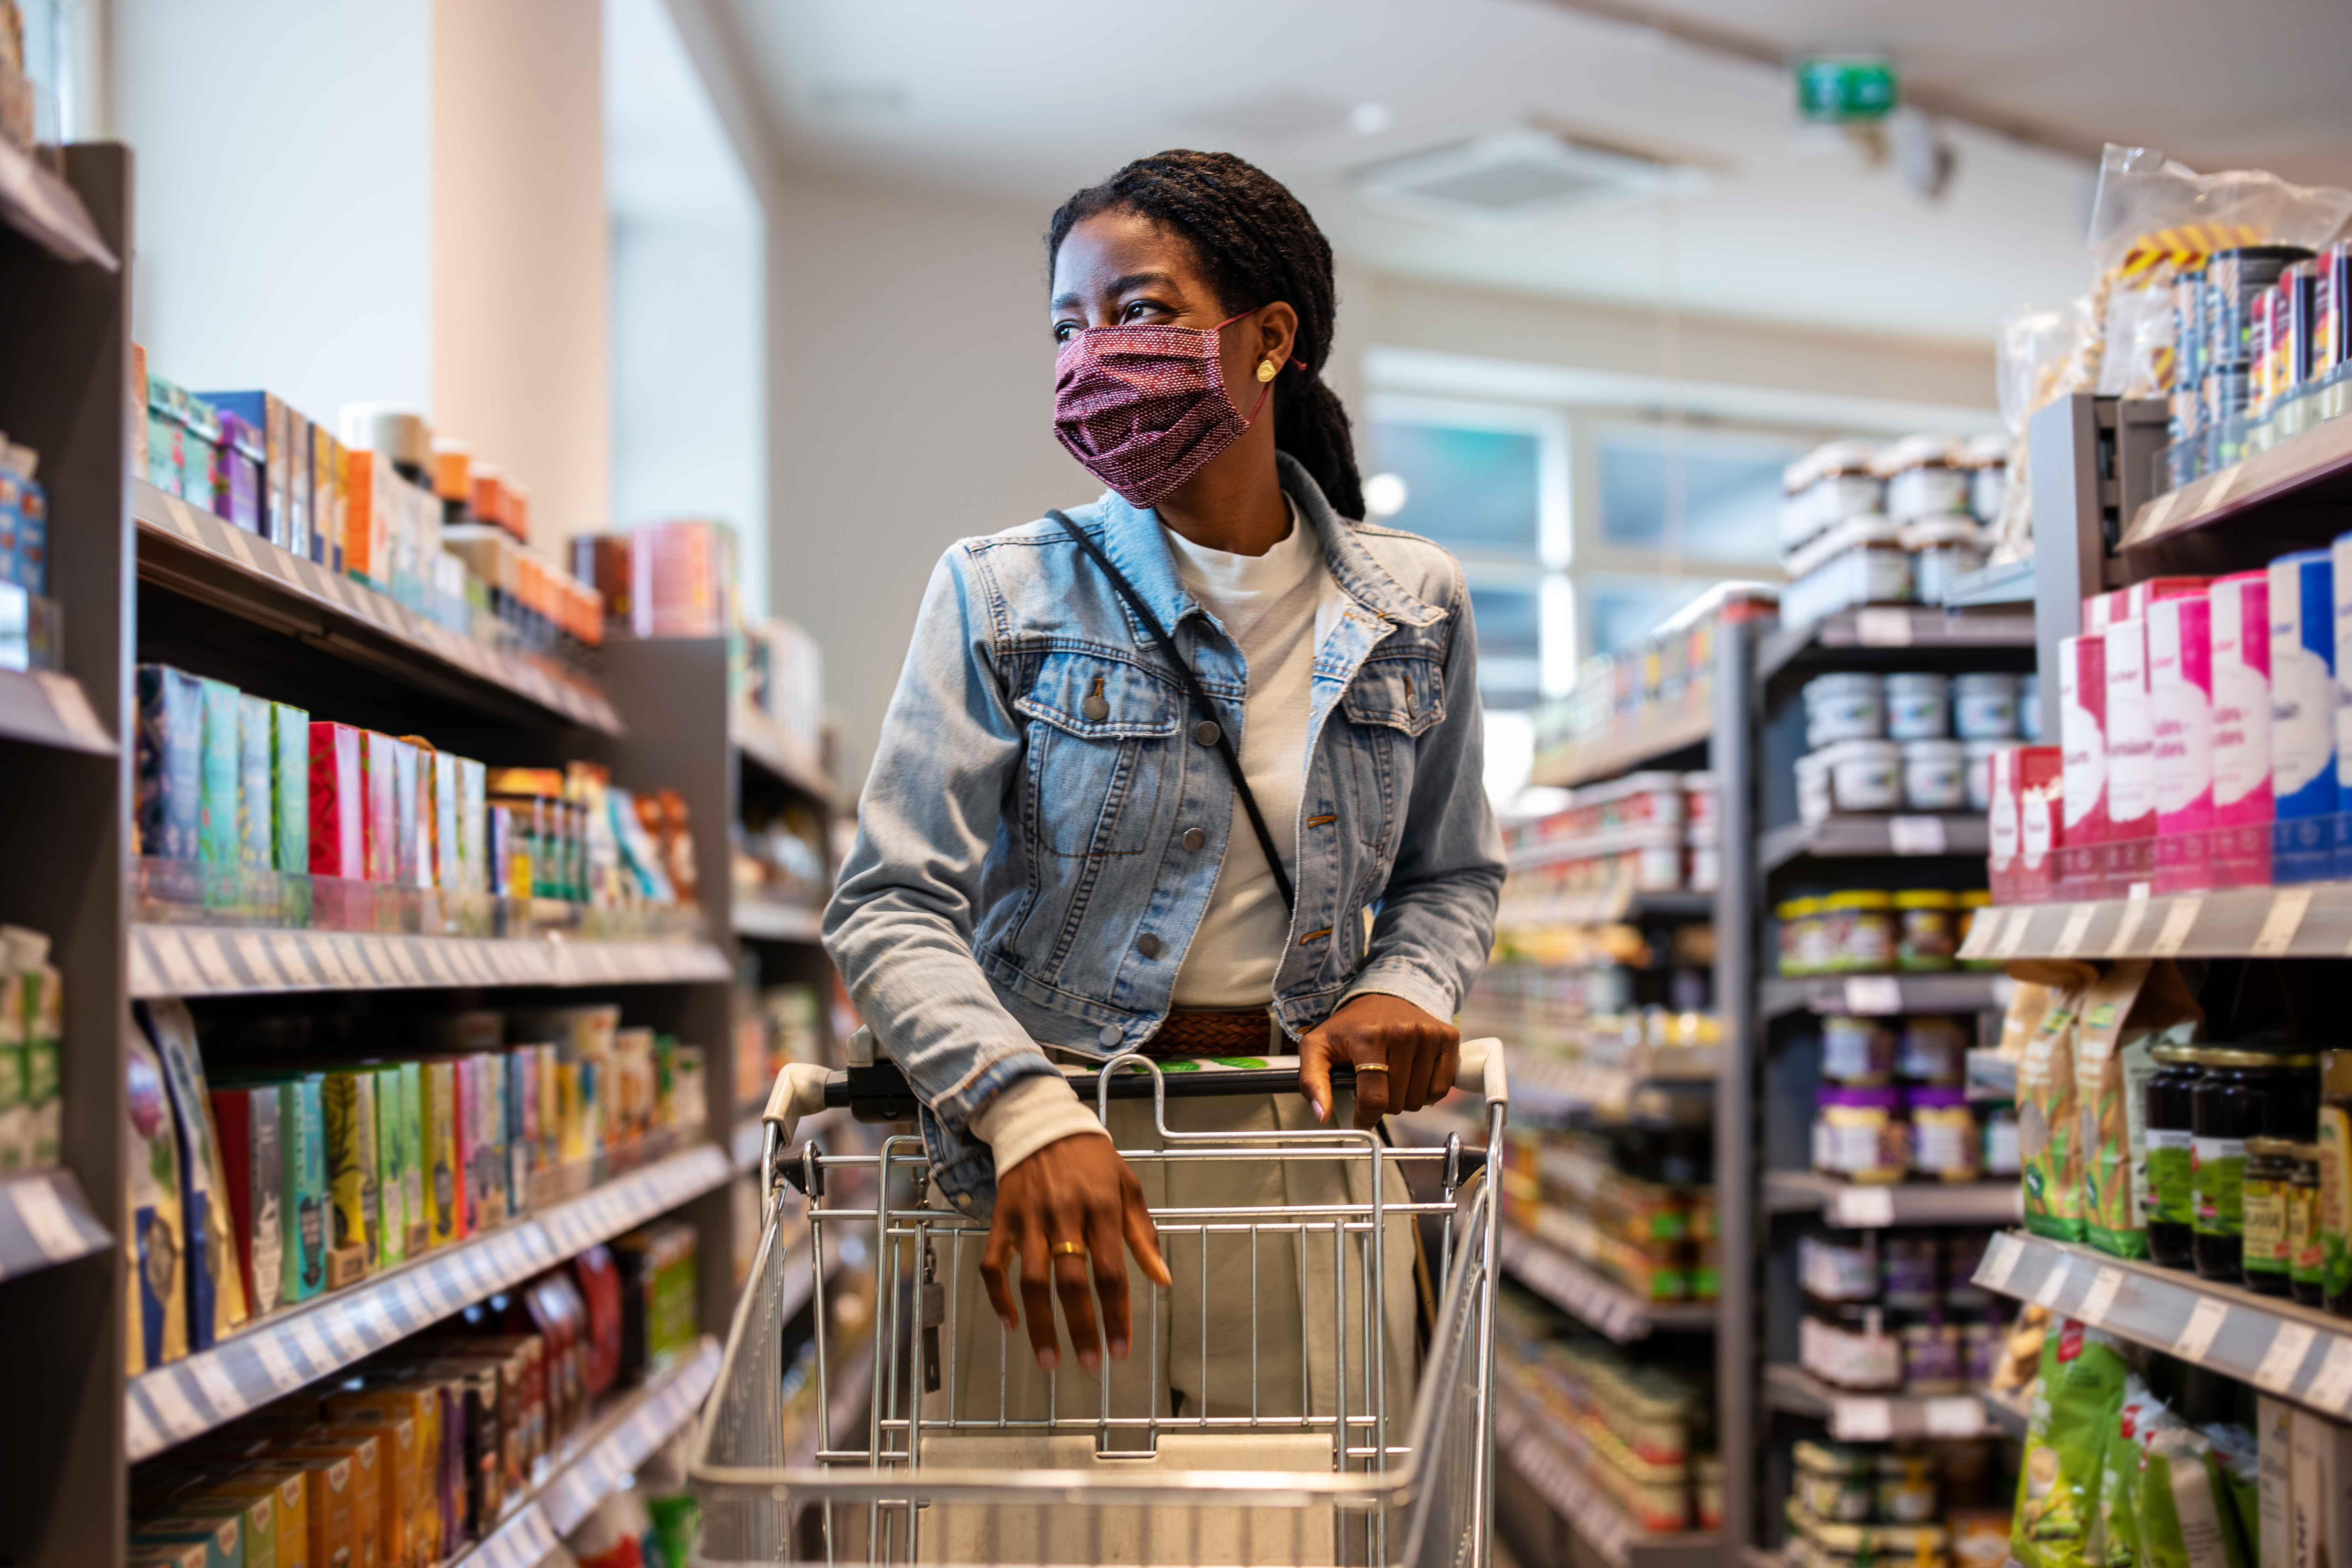 A woman wearing a face mask shops in a grocery store.